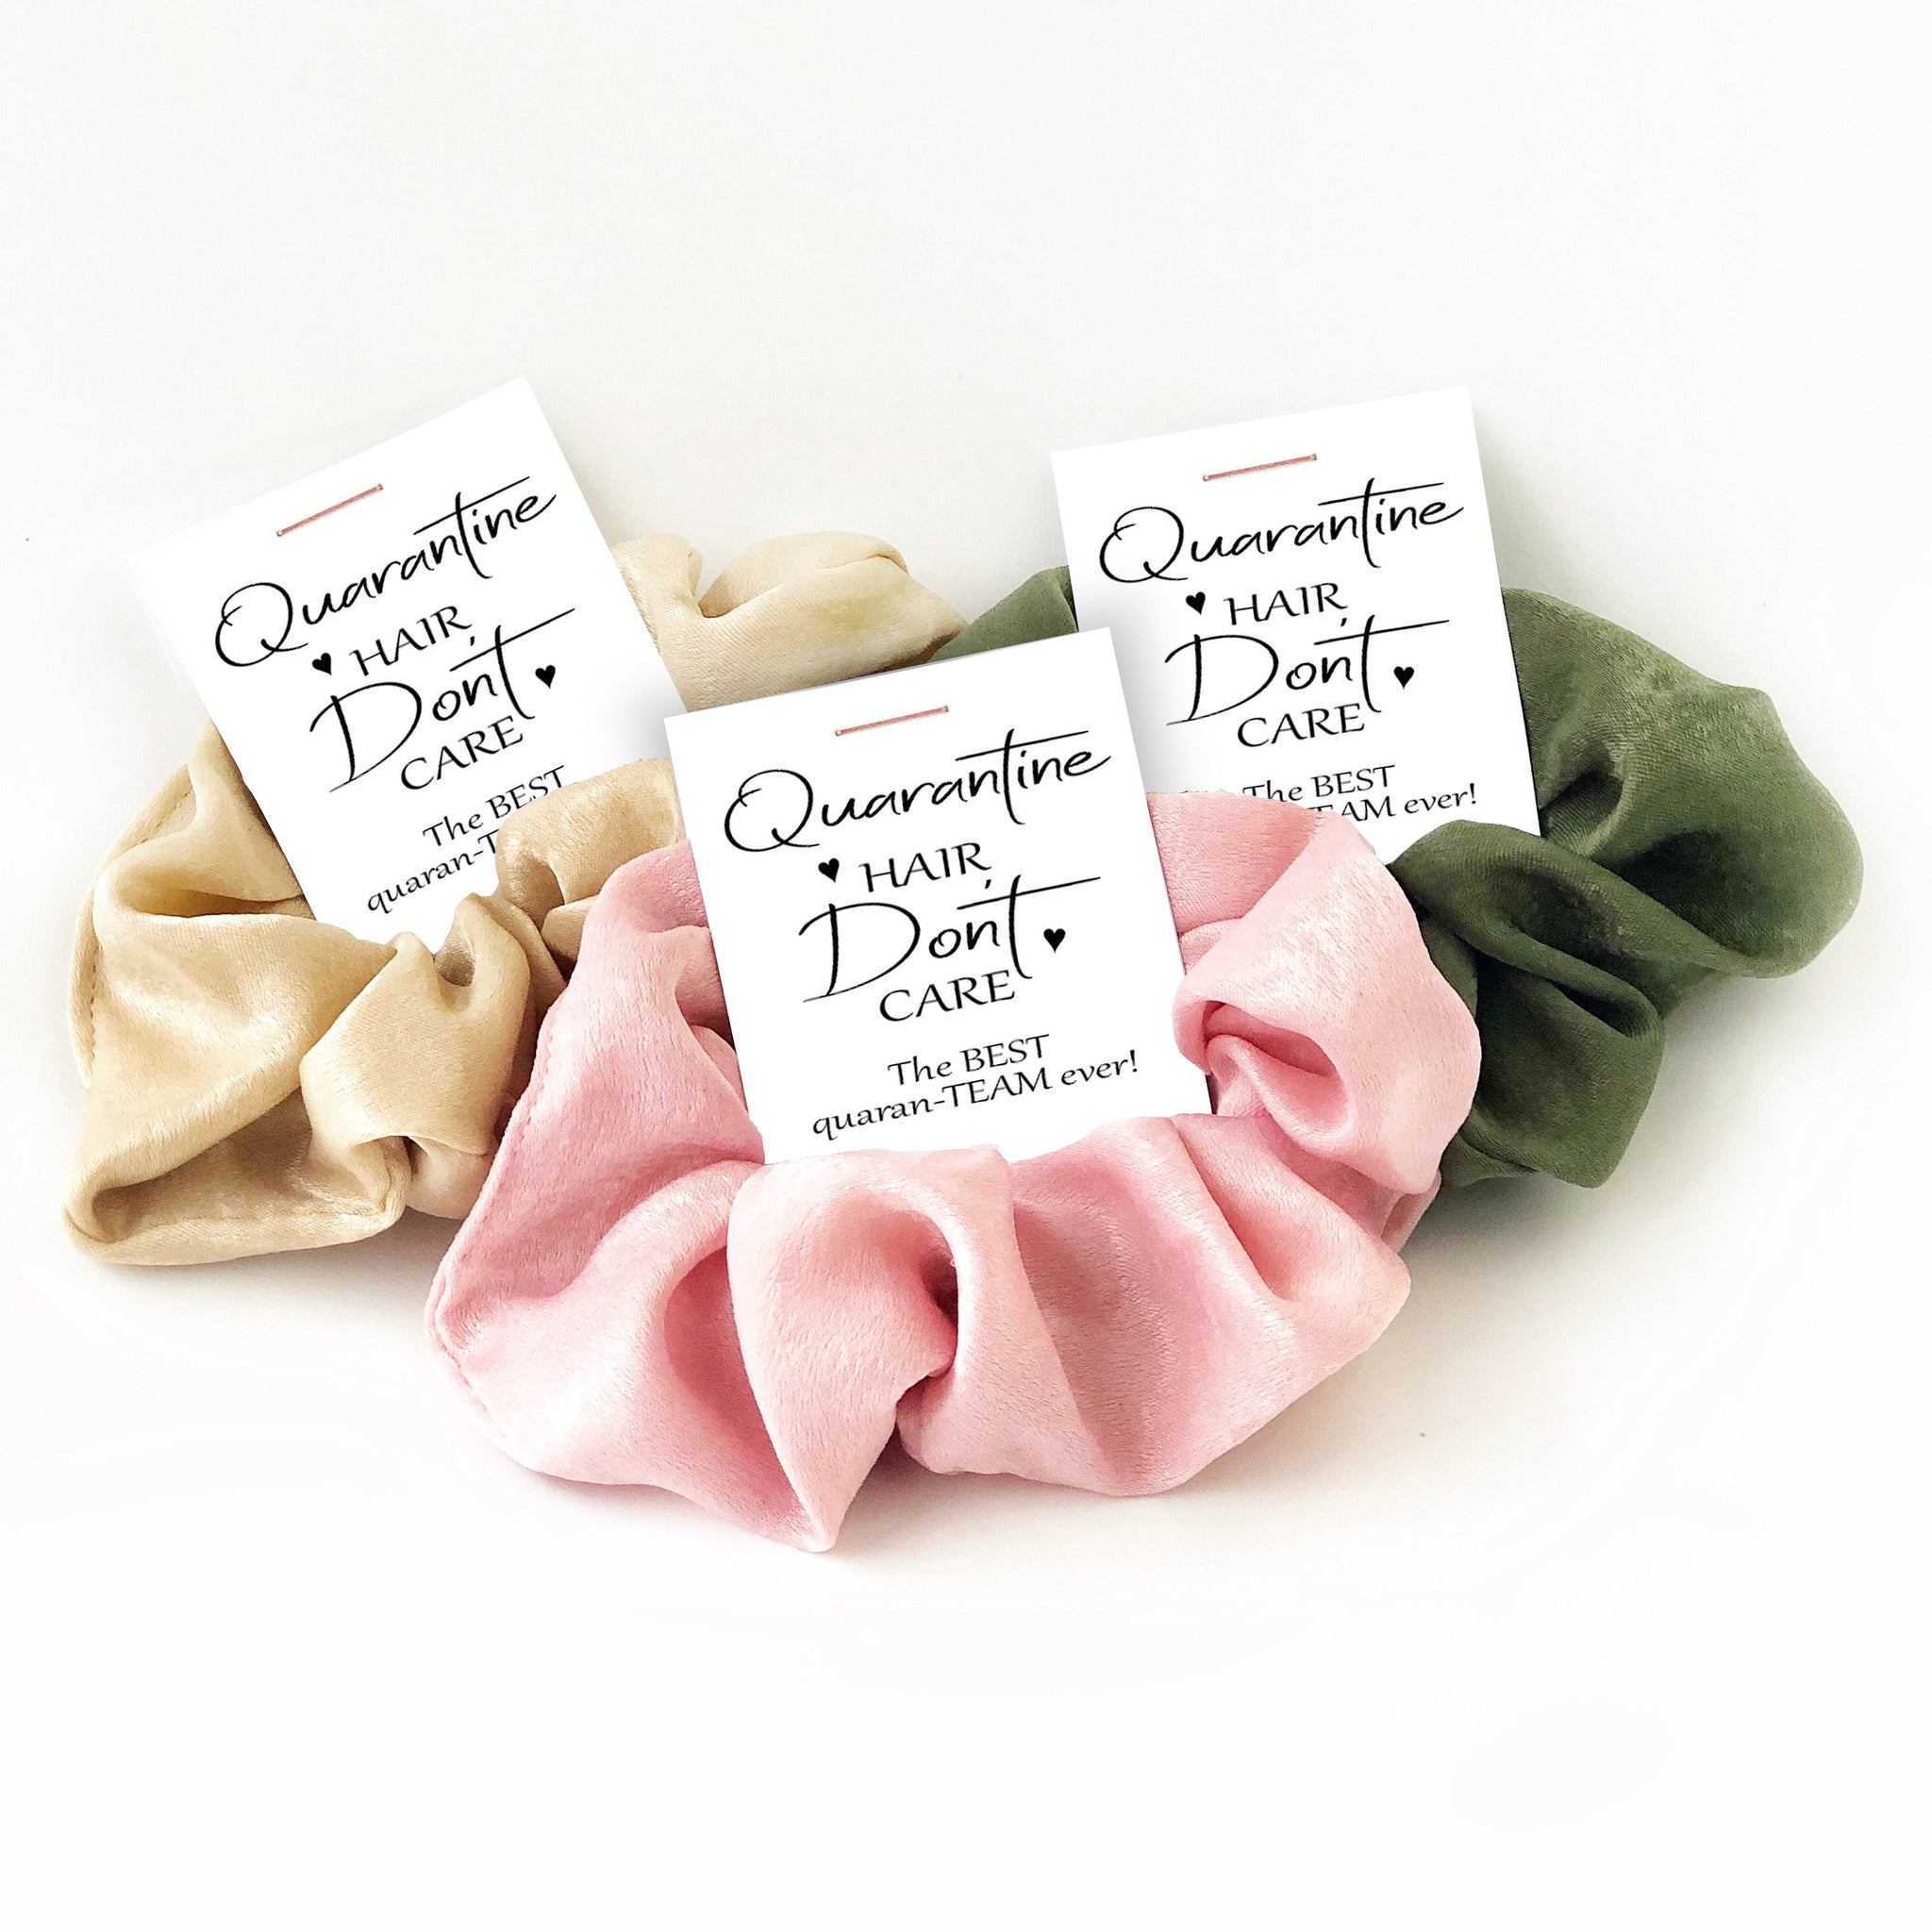 Quarantine Gift, Scrunchie Employee Gift, Team Gift, Thinking of You Gift, Social Distancing, Team Gift